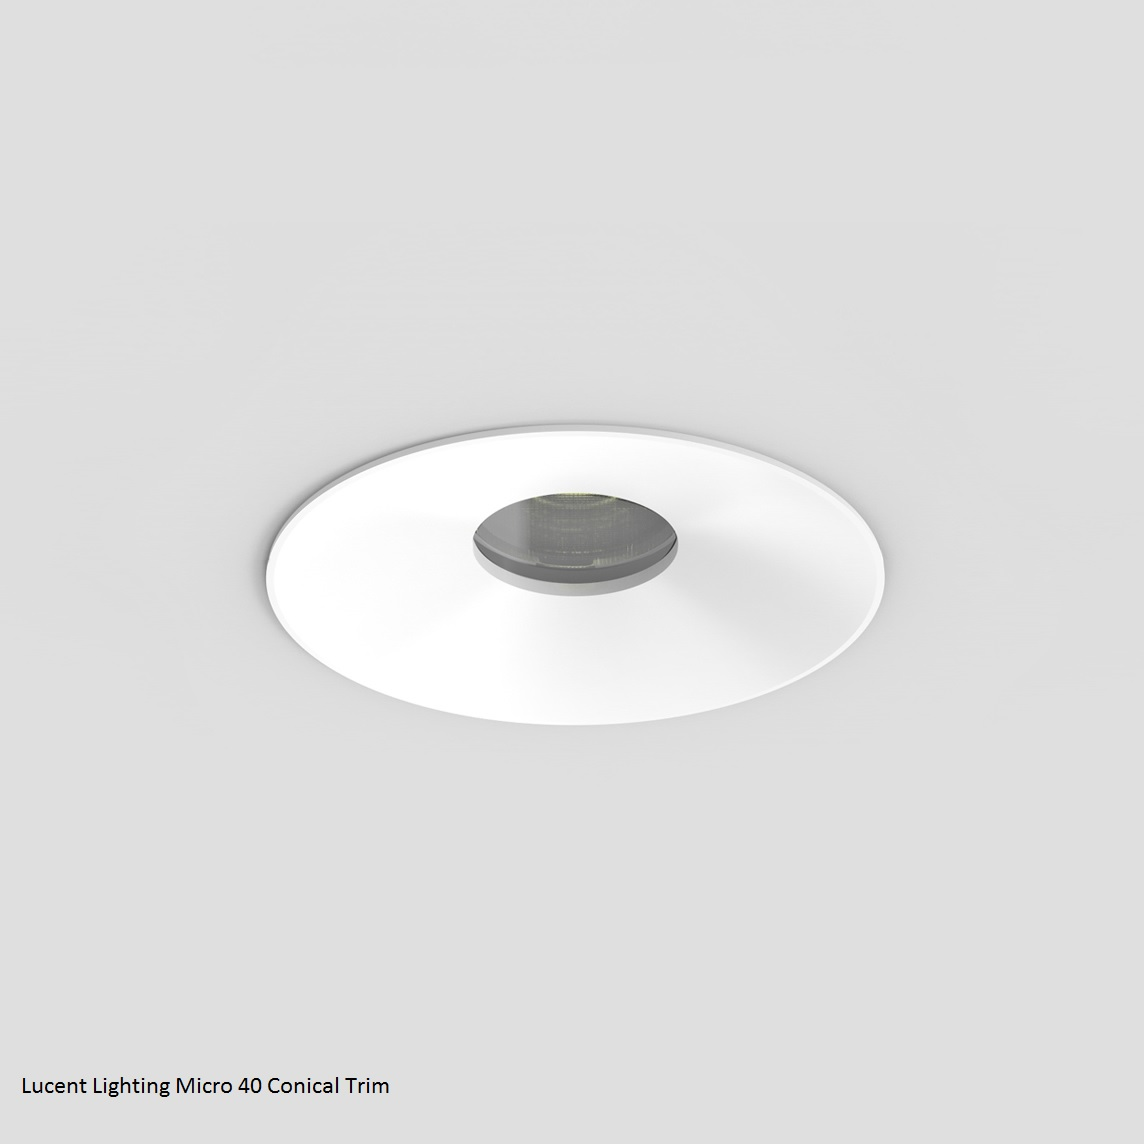 lucent-lighting-micro-40-conical-trim